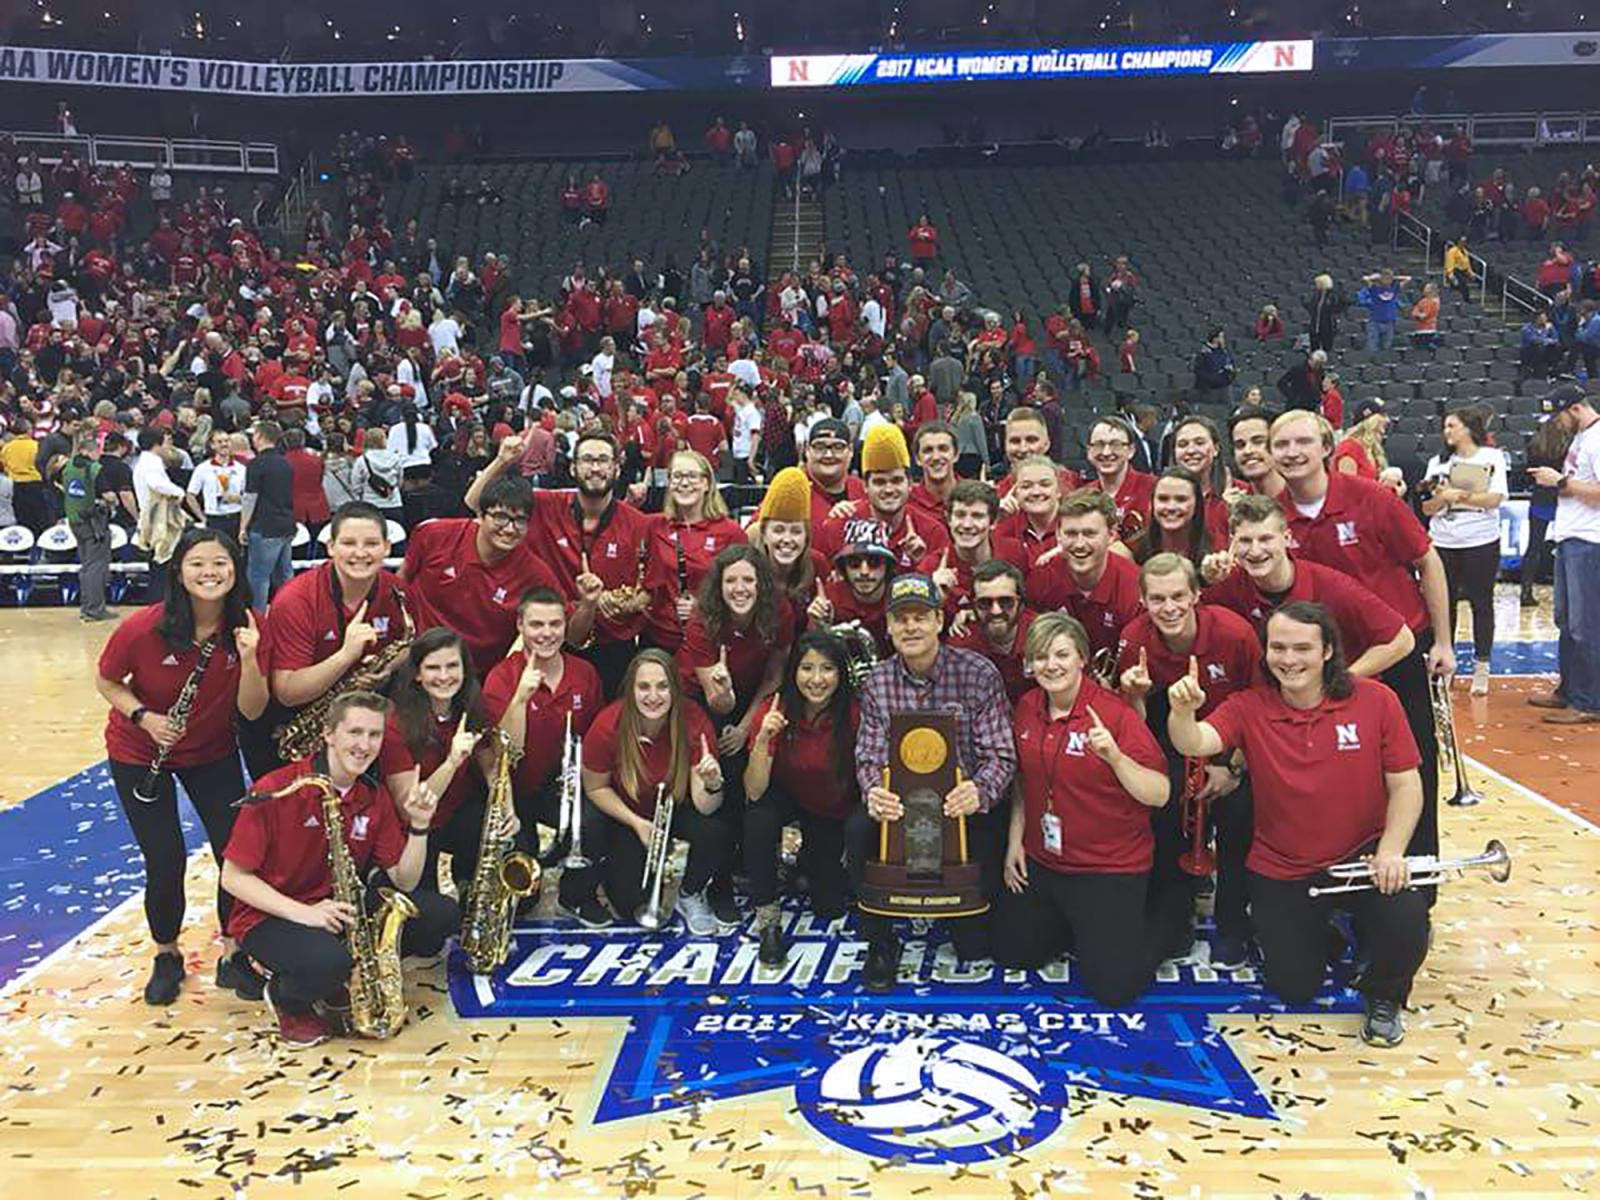 Photo of the Big Red Express pep band at the 2017 NCAA Volleyball Championships.